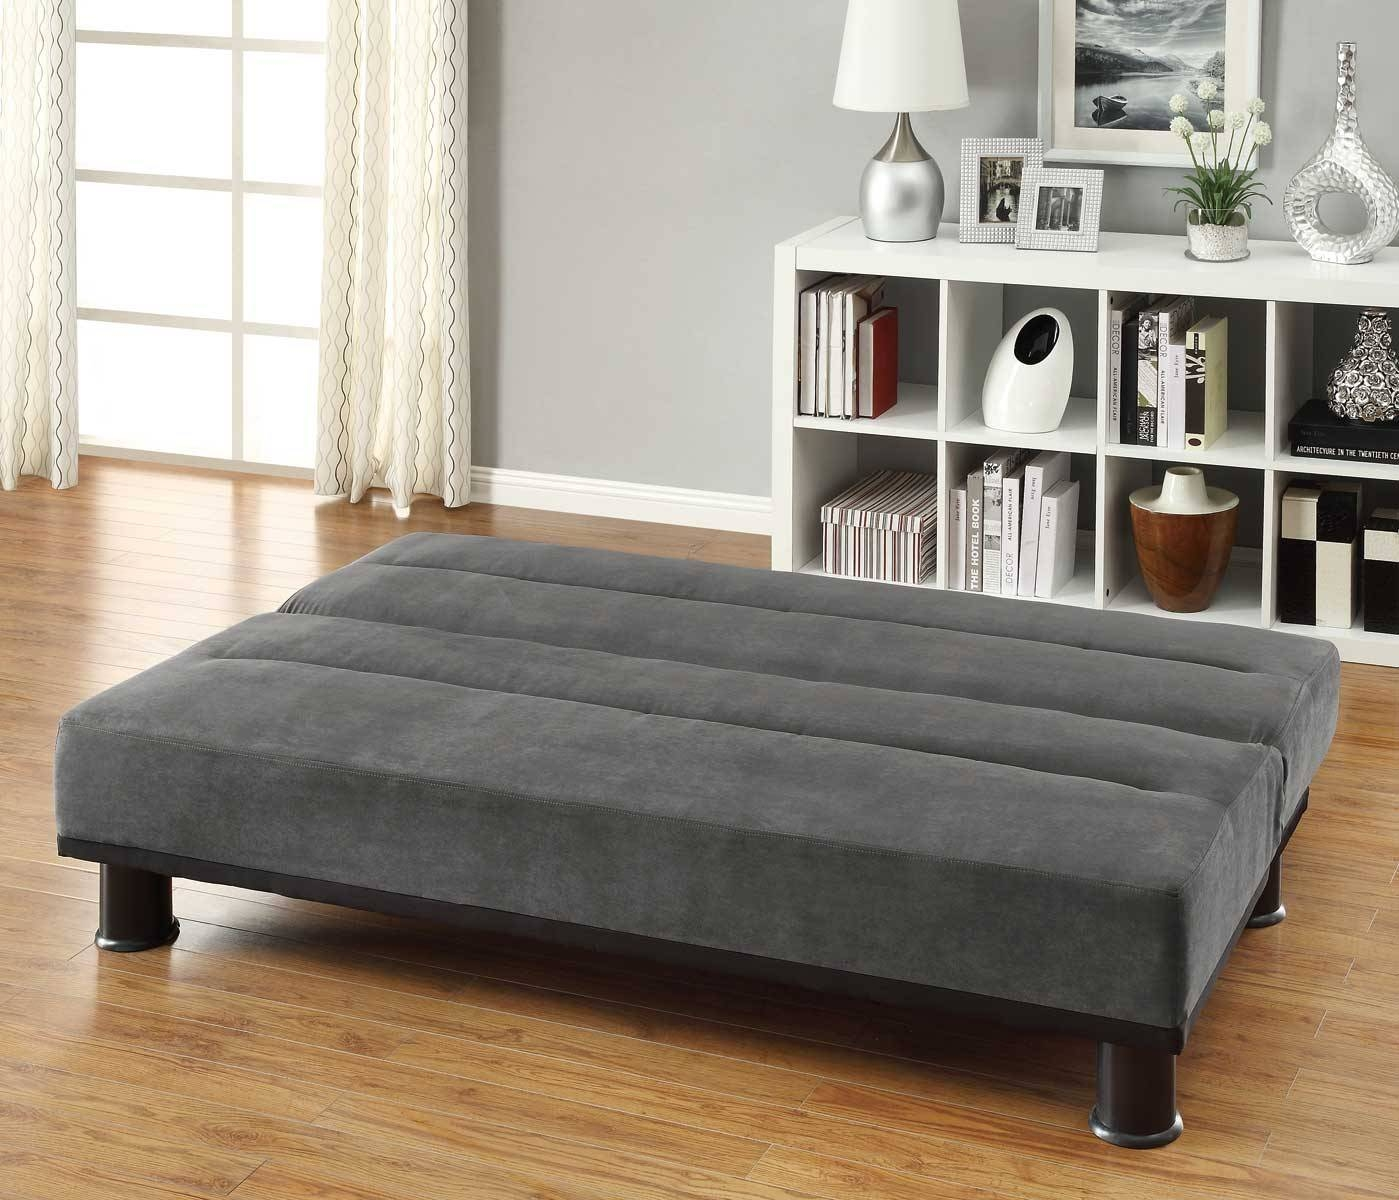 Homelegance Callie Click-Clack Sofa Bed - Graphite - Grey with Clic Clac Sofa Beds (Image 9 of 15)